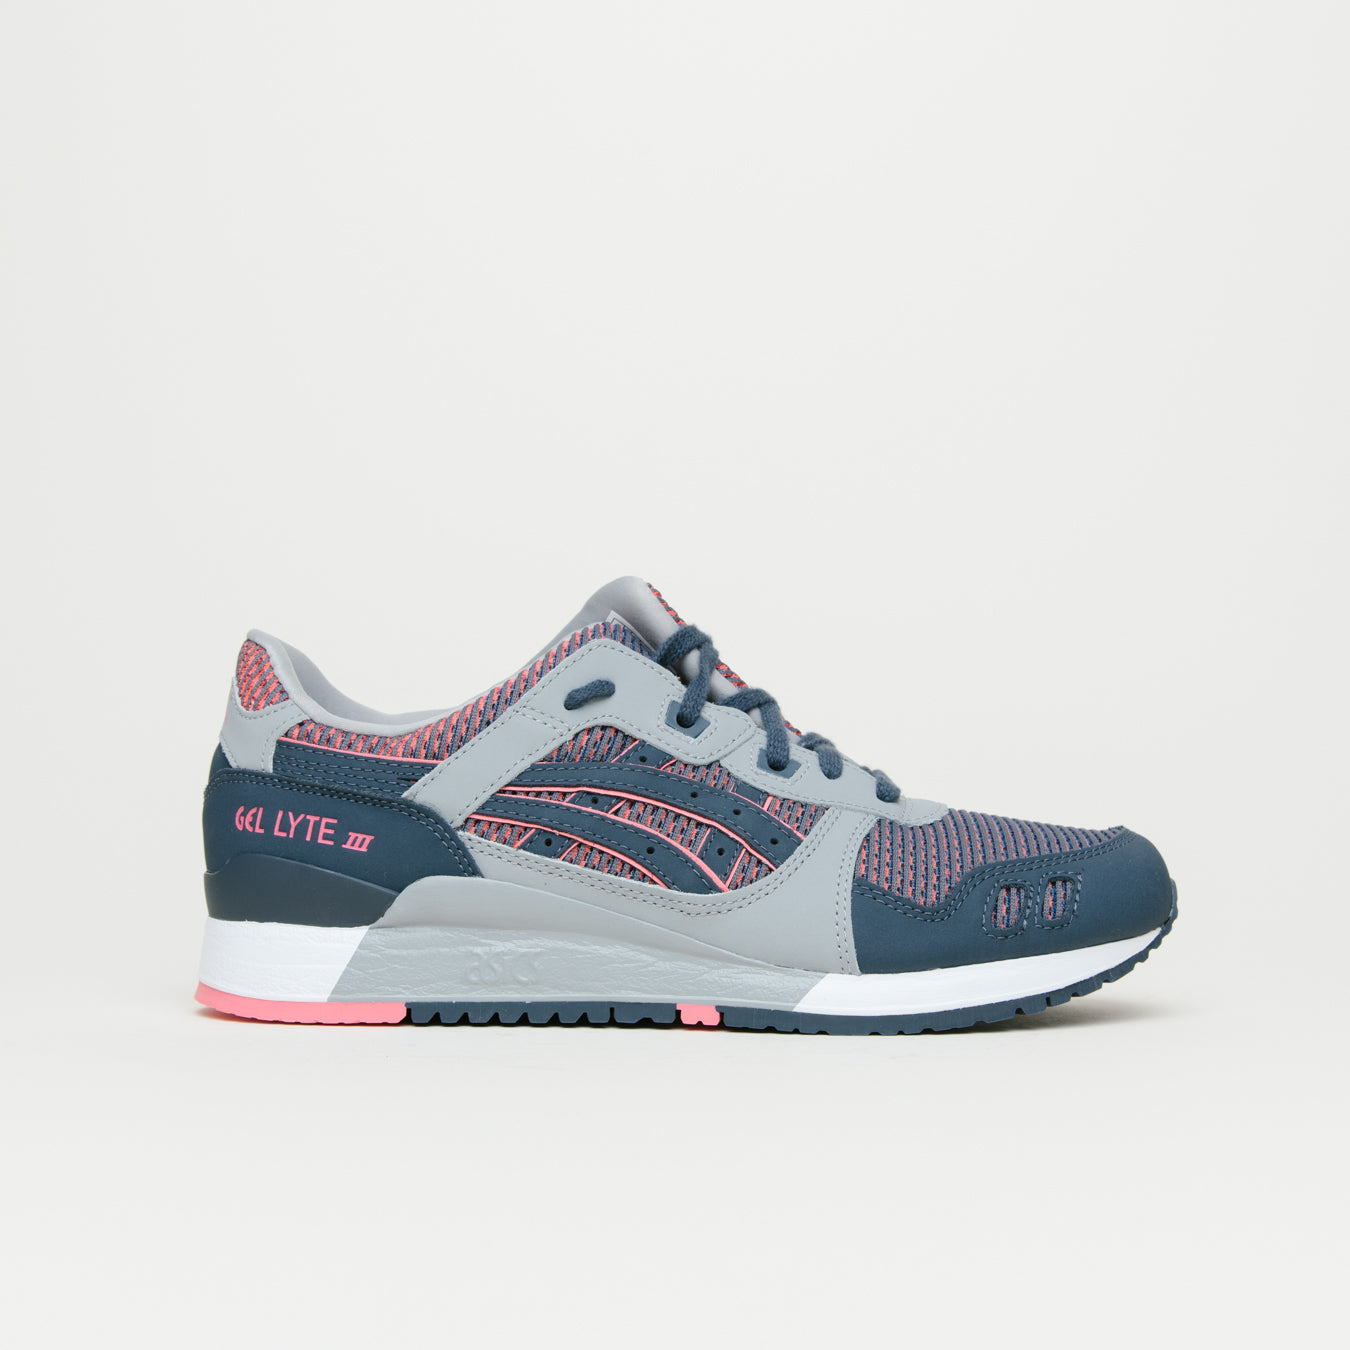 detailed look b8fa3 51427 Asics Gel Lyte III (Medium Grey/Guava)